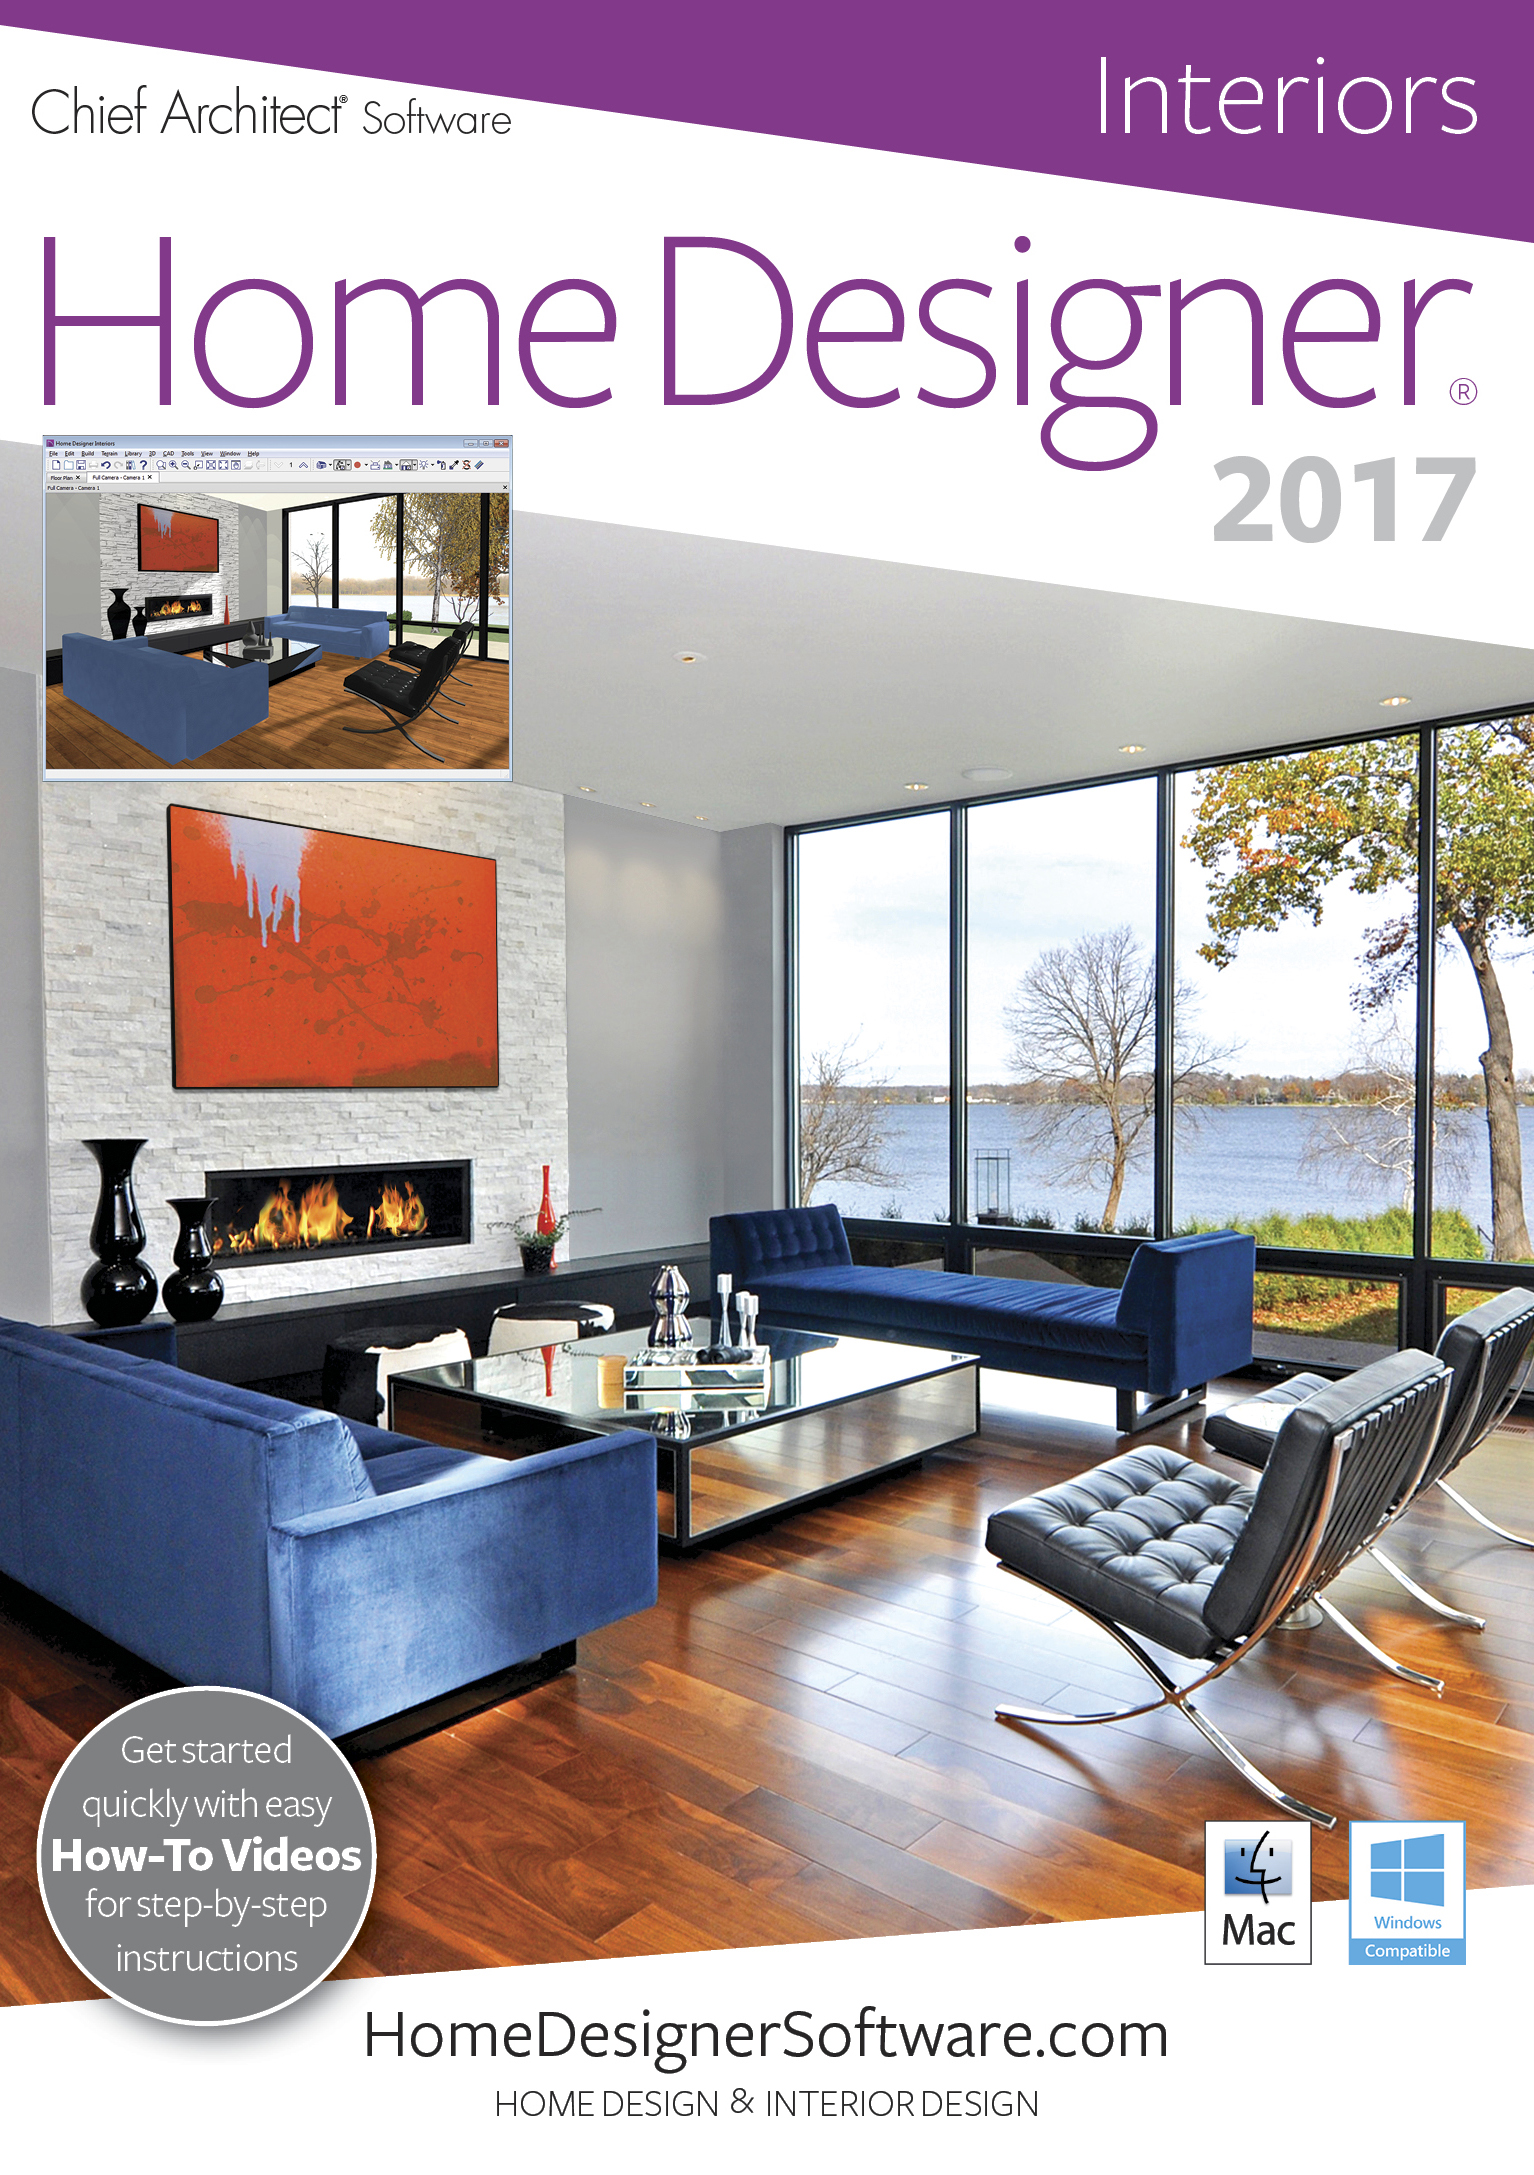 Amazon.com: Home Designer Interiors 2017 [Mac]: Software